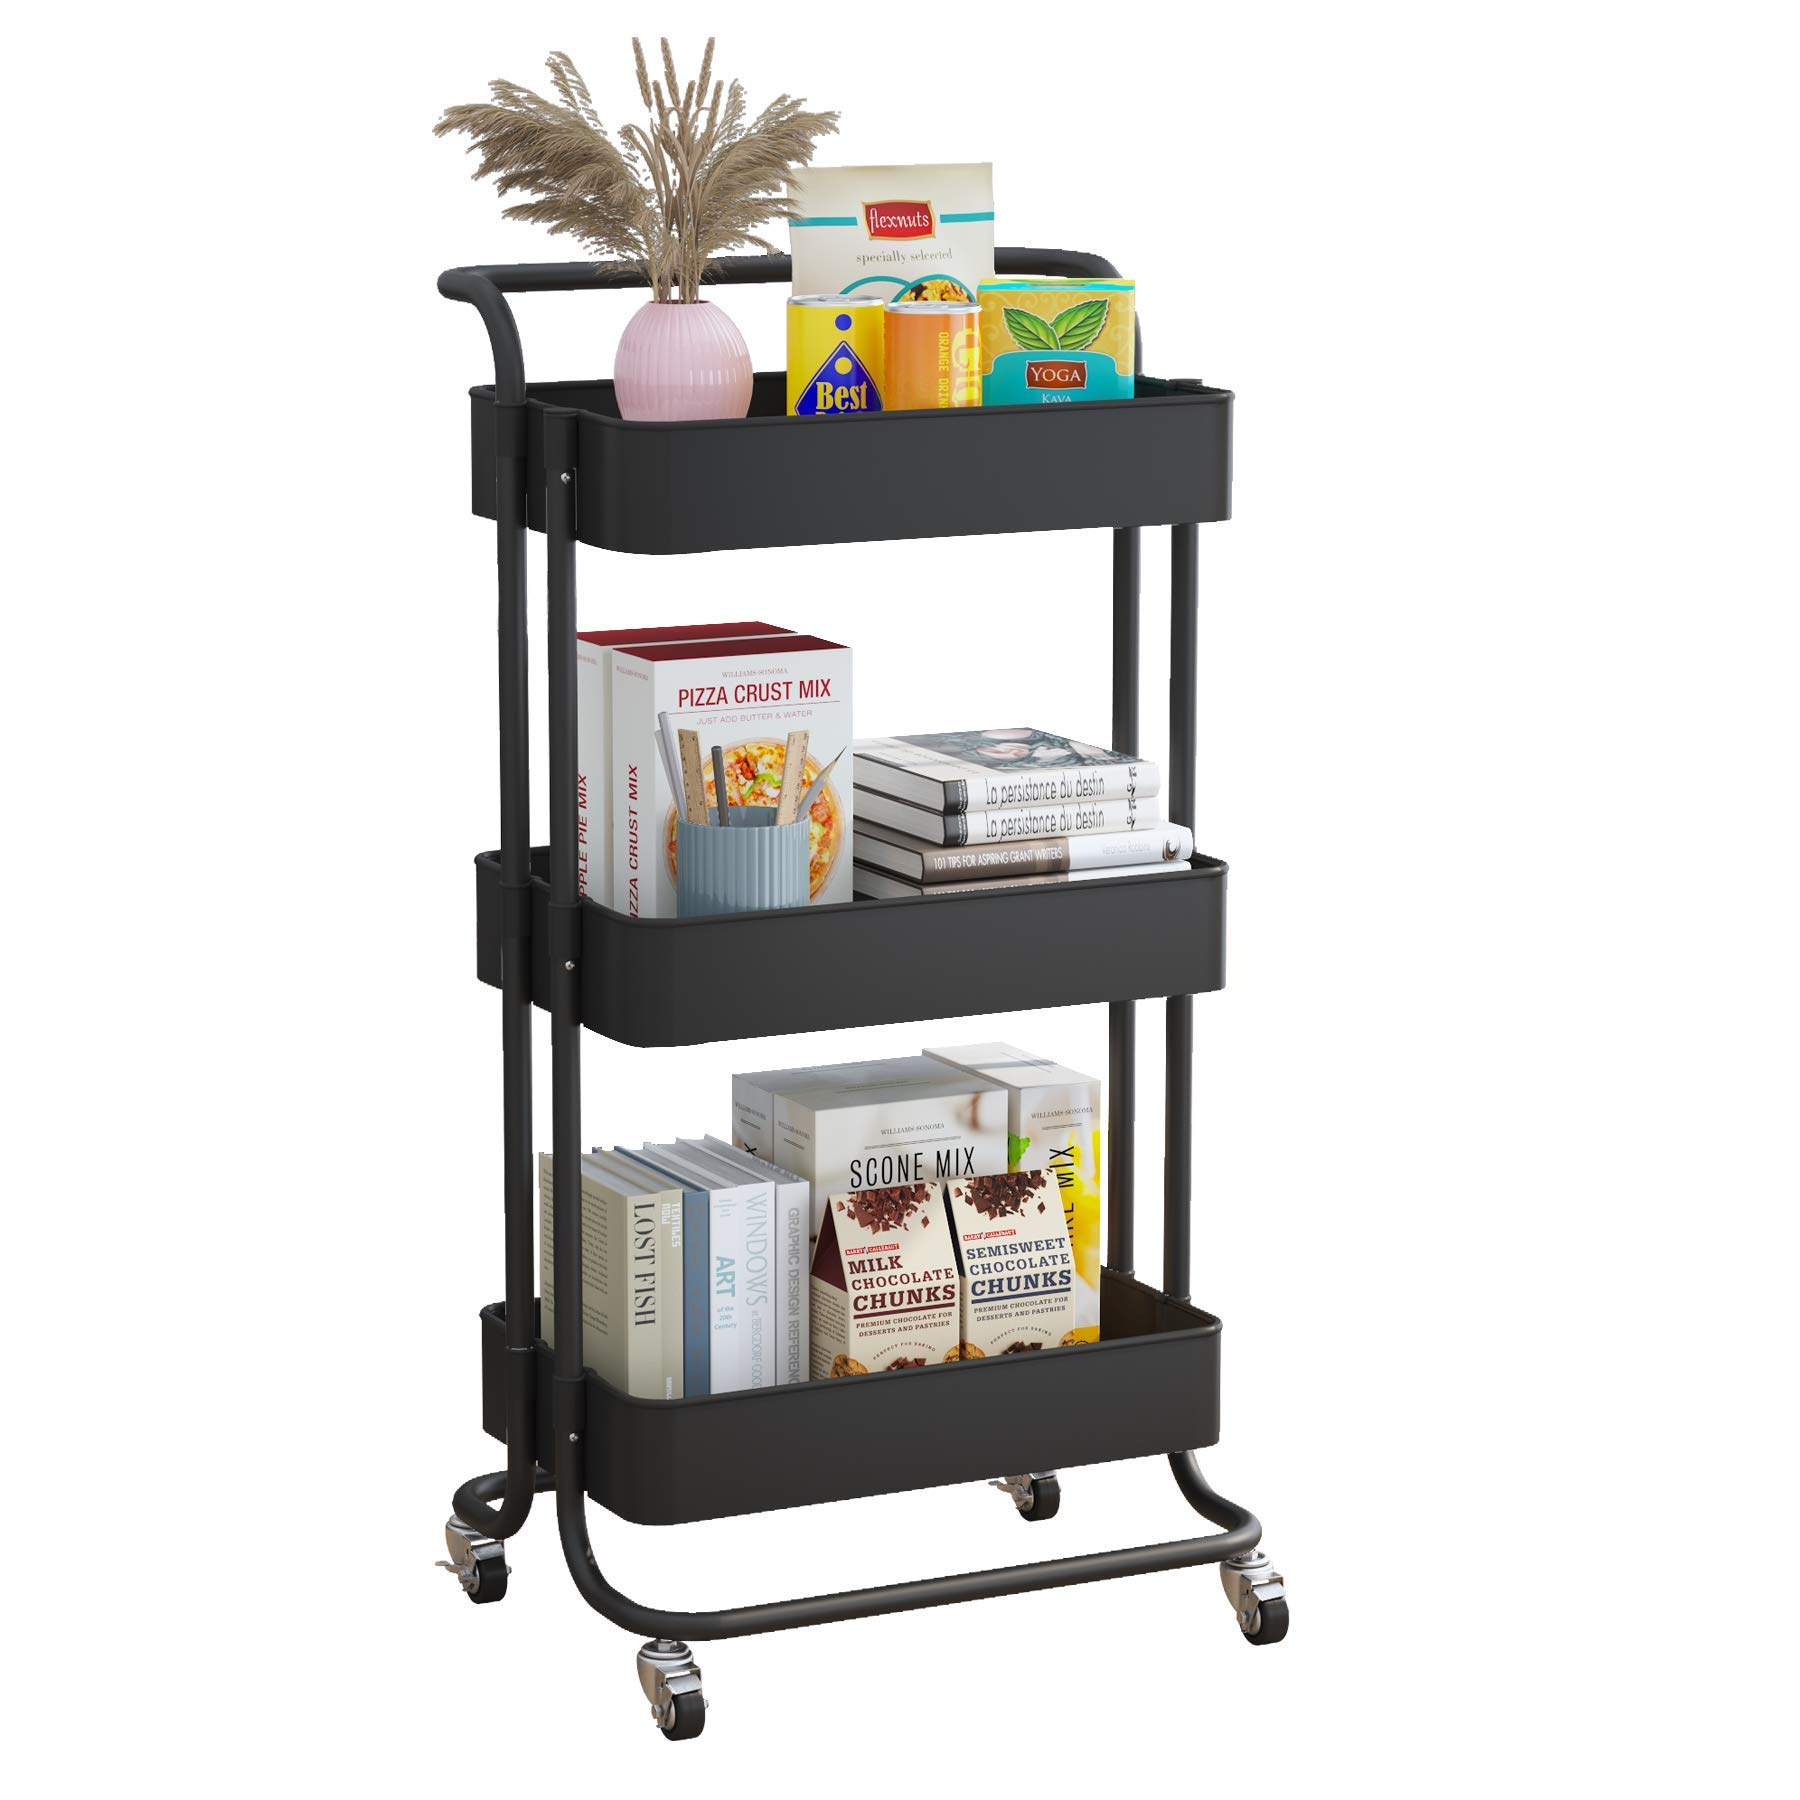 ACCSTORE 3-Tier Rolling Utility Cart, Storage Cart with Handle Multi-Purpose with Locking Wheels, Suitable for Kitchen, Living Room, Office,Black